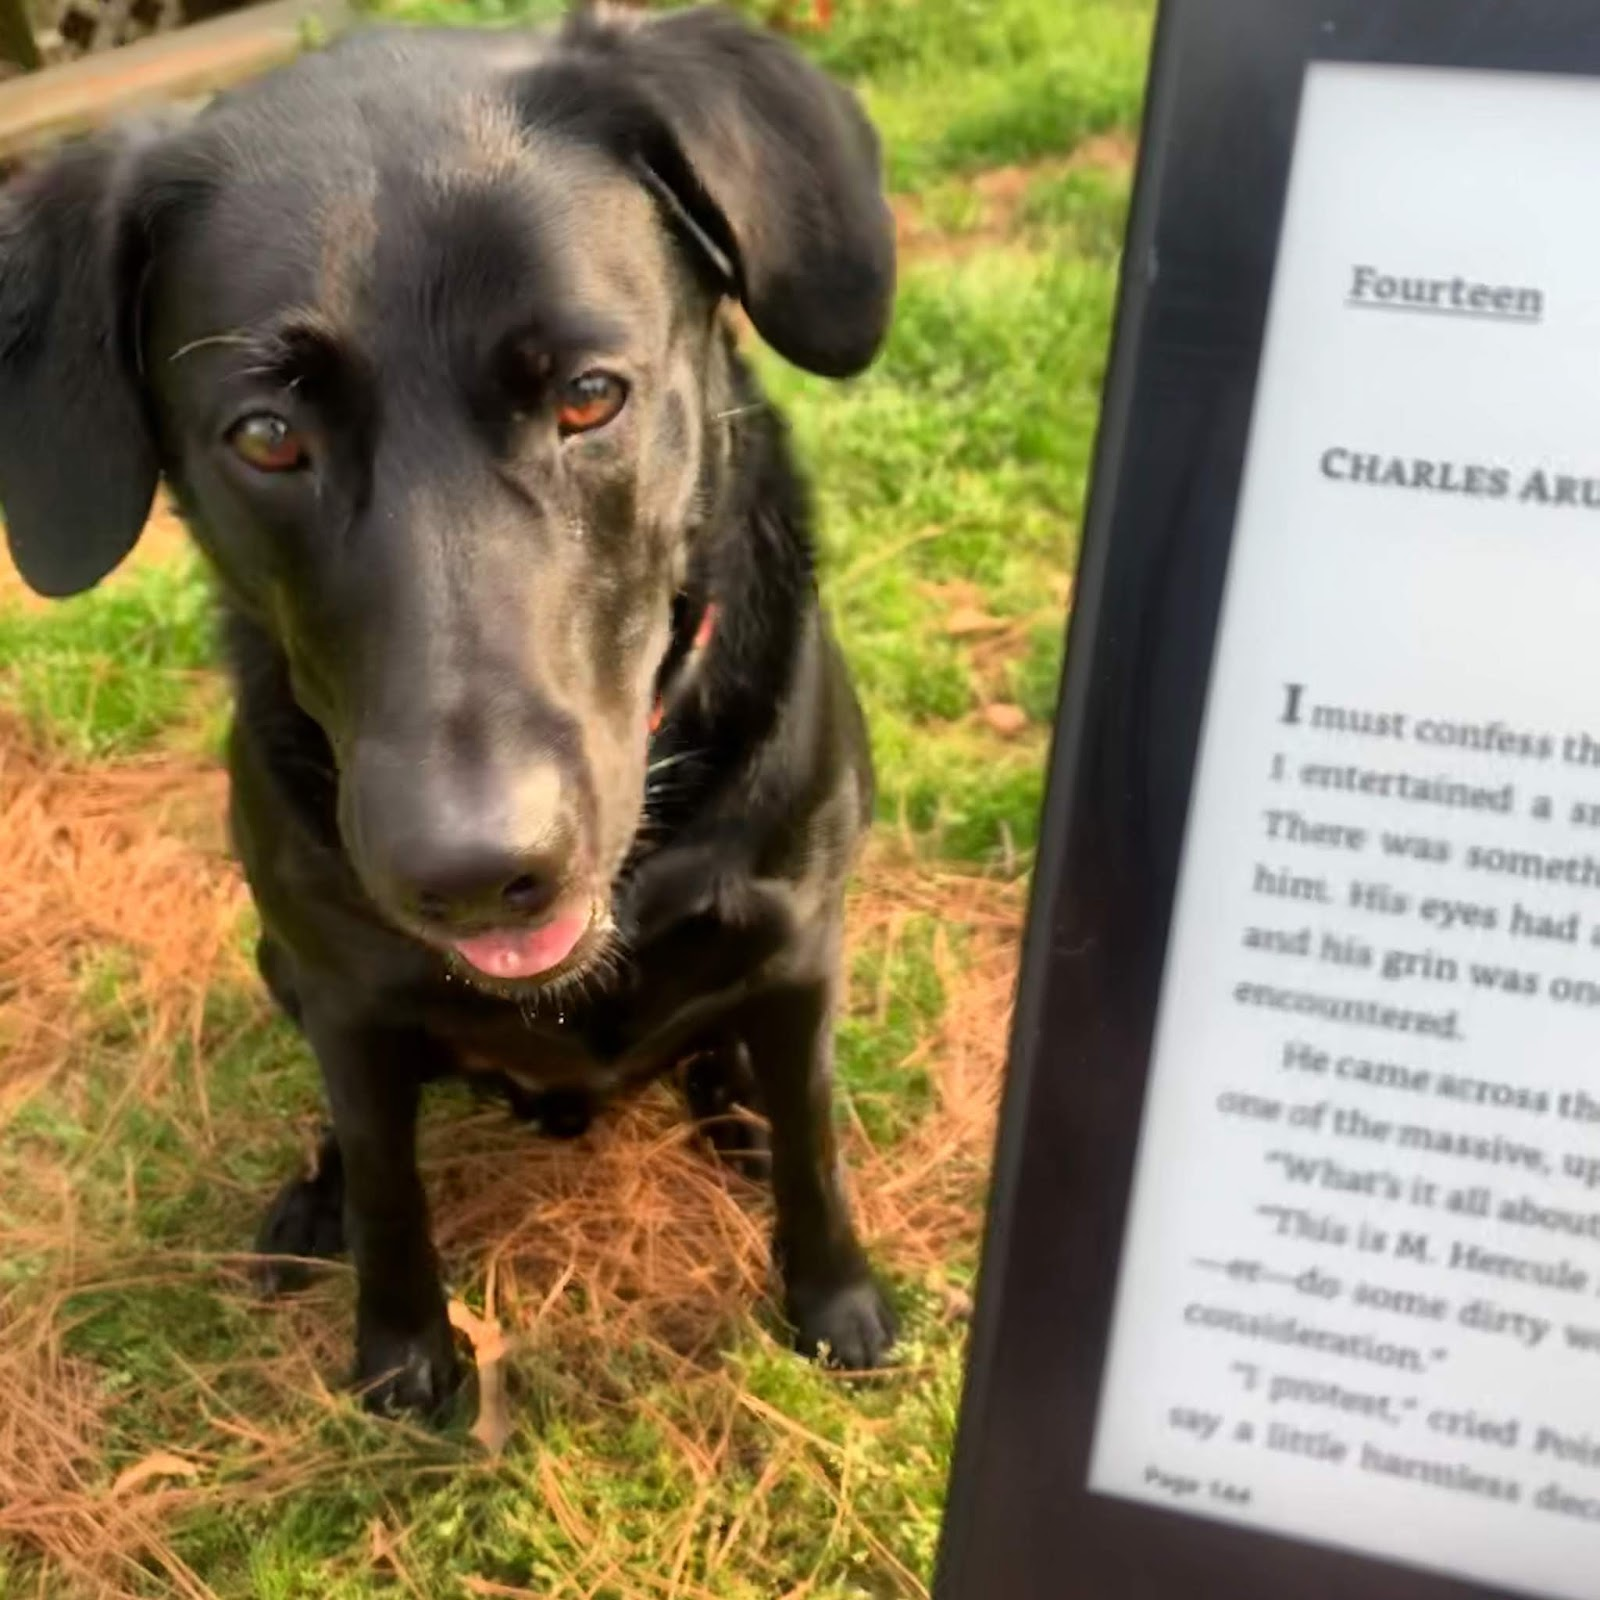 Albus, a black lab, is staring directly at the camera. A slightly out of focus e-reader shows the first page of chapter fourteen